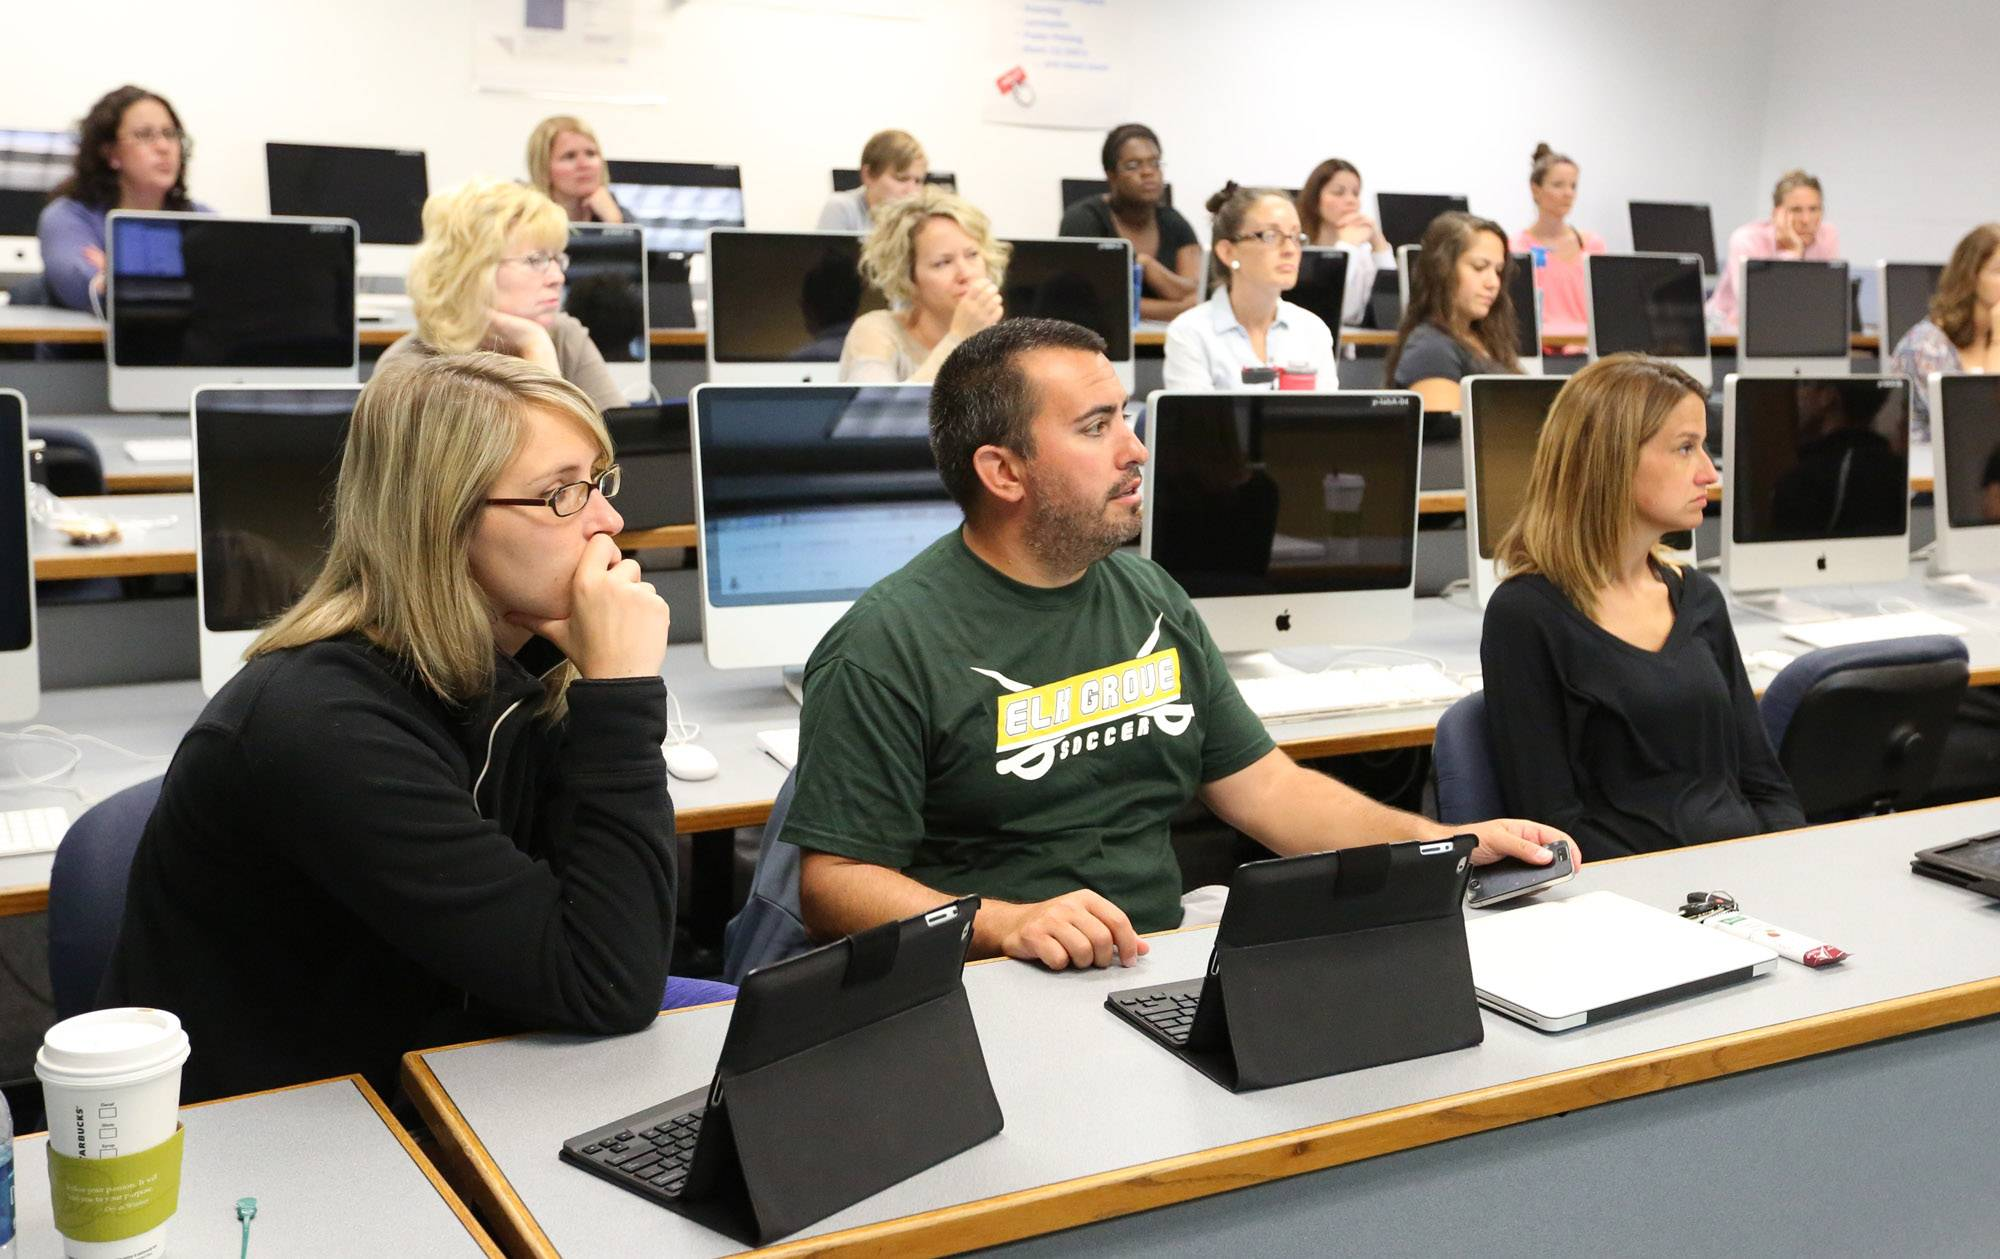 North Suburban High School Dist. 214 teachers learn how to use iPads in their curriculum at Prospect High School in Mount Prospect.